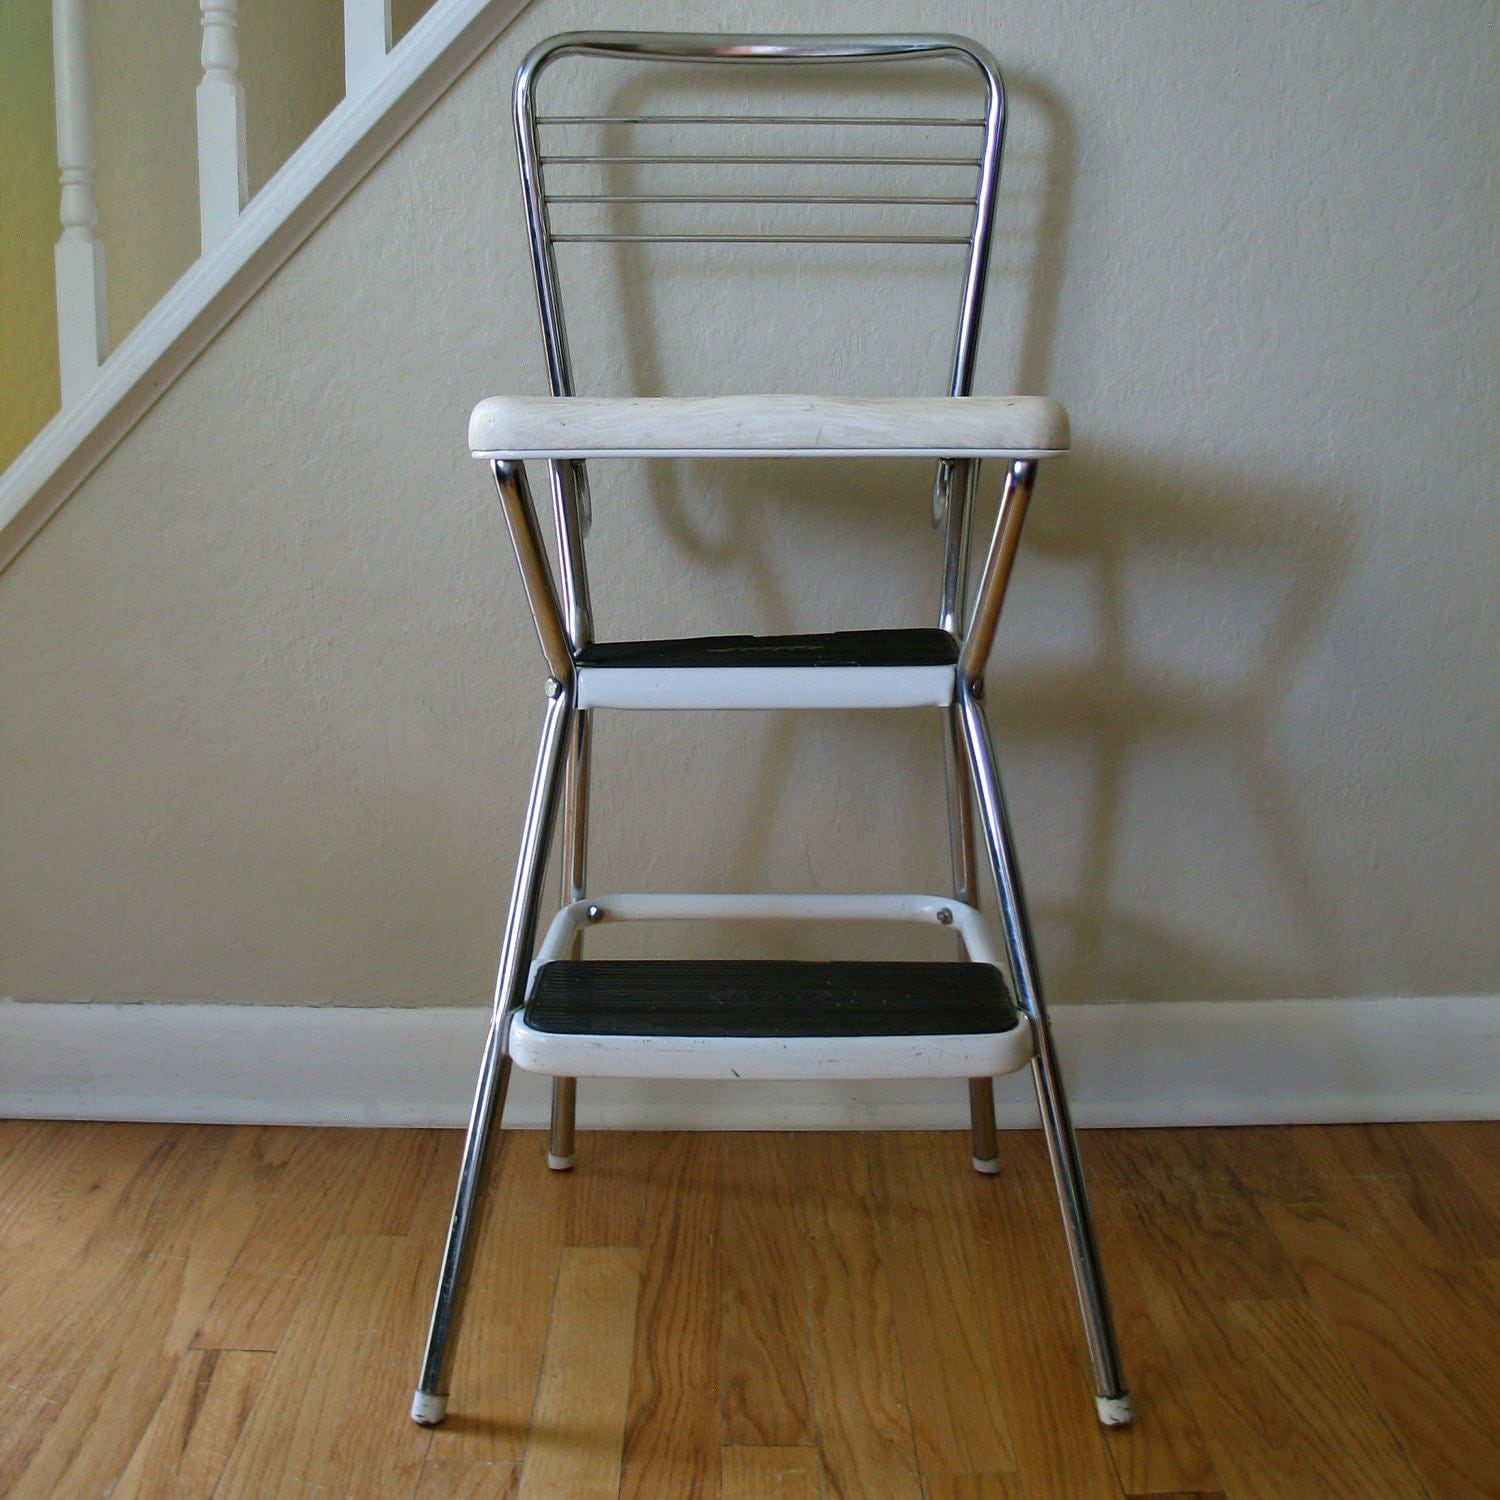 Vintage Cosco Chair Step Stool By Gracewillvintage On Etsy